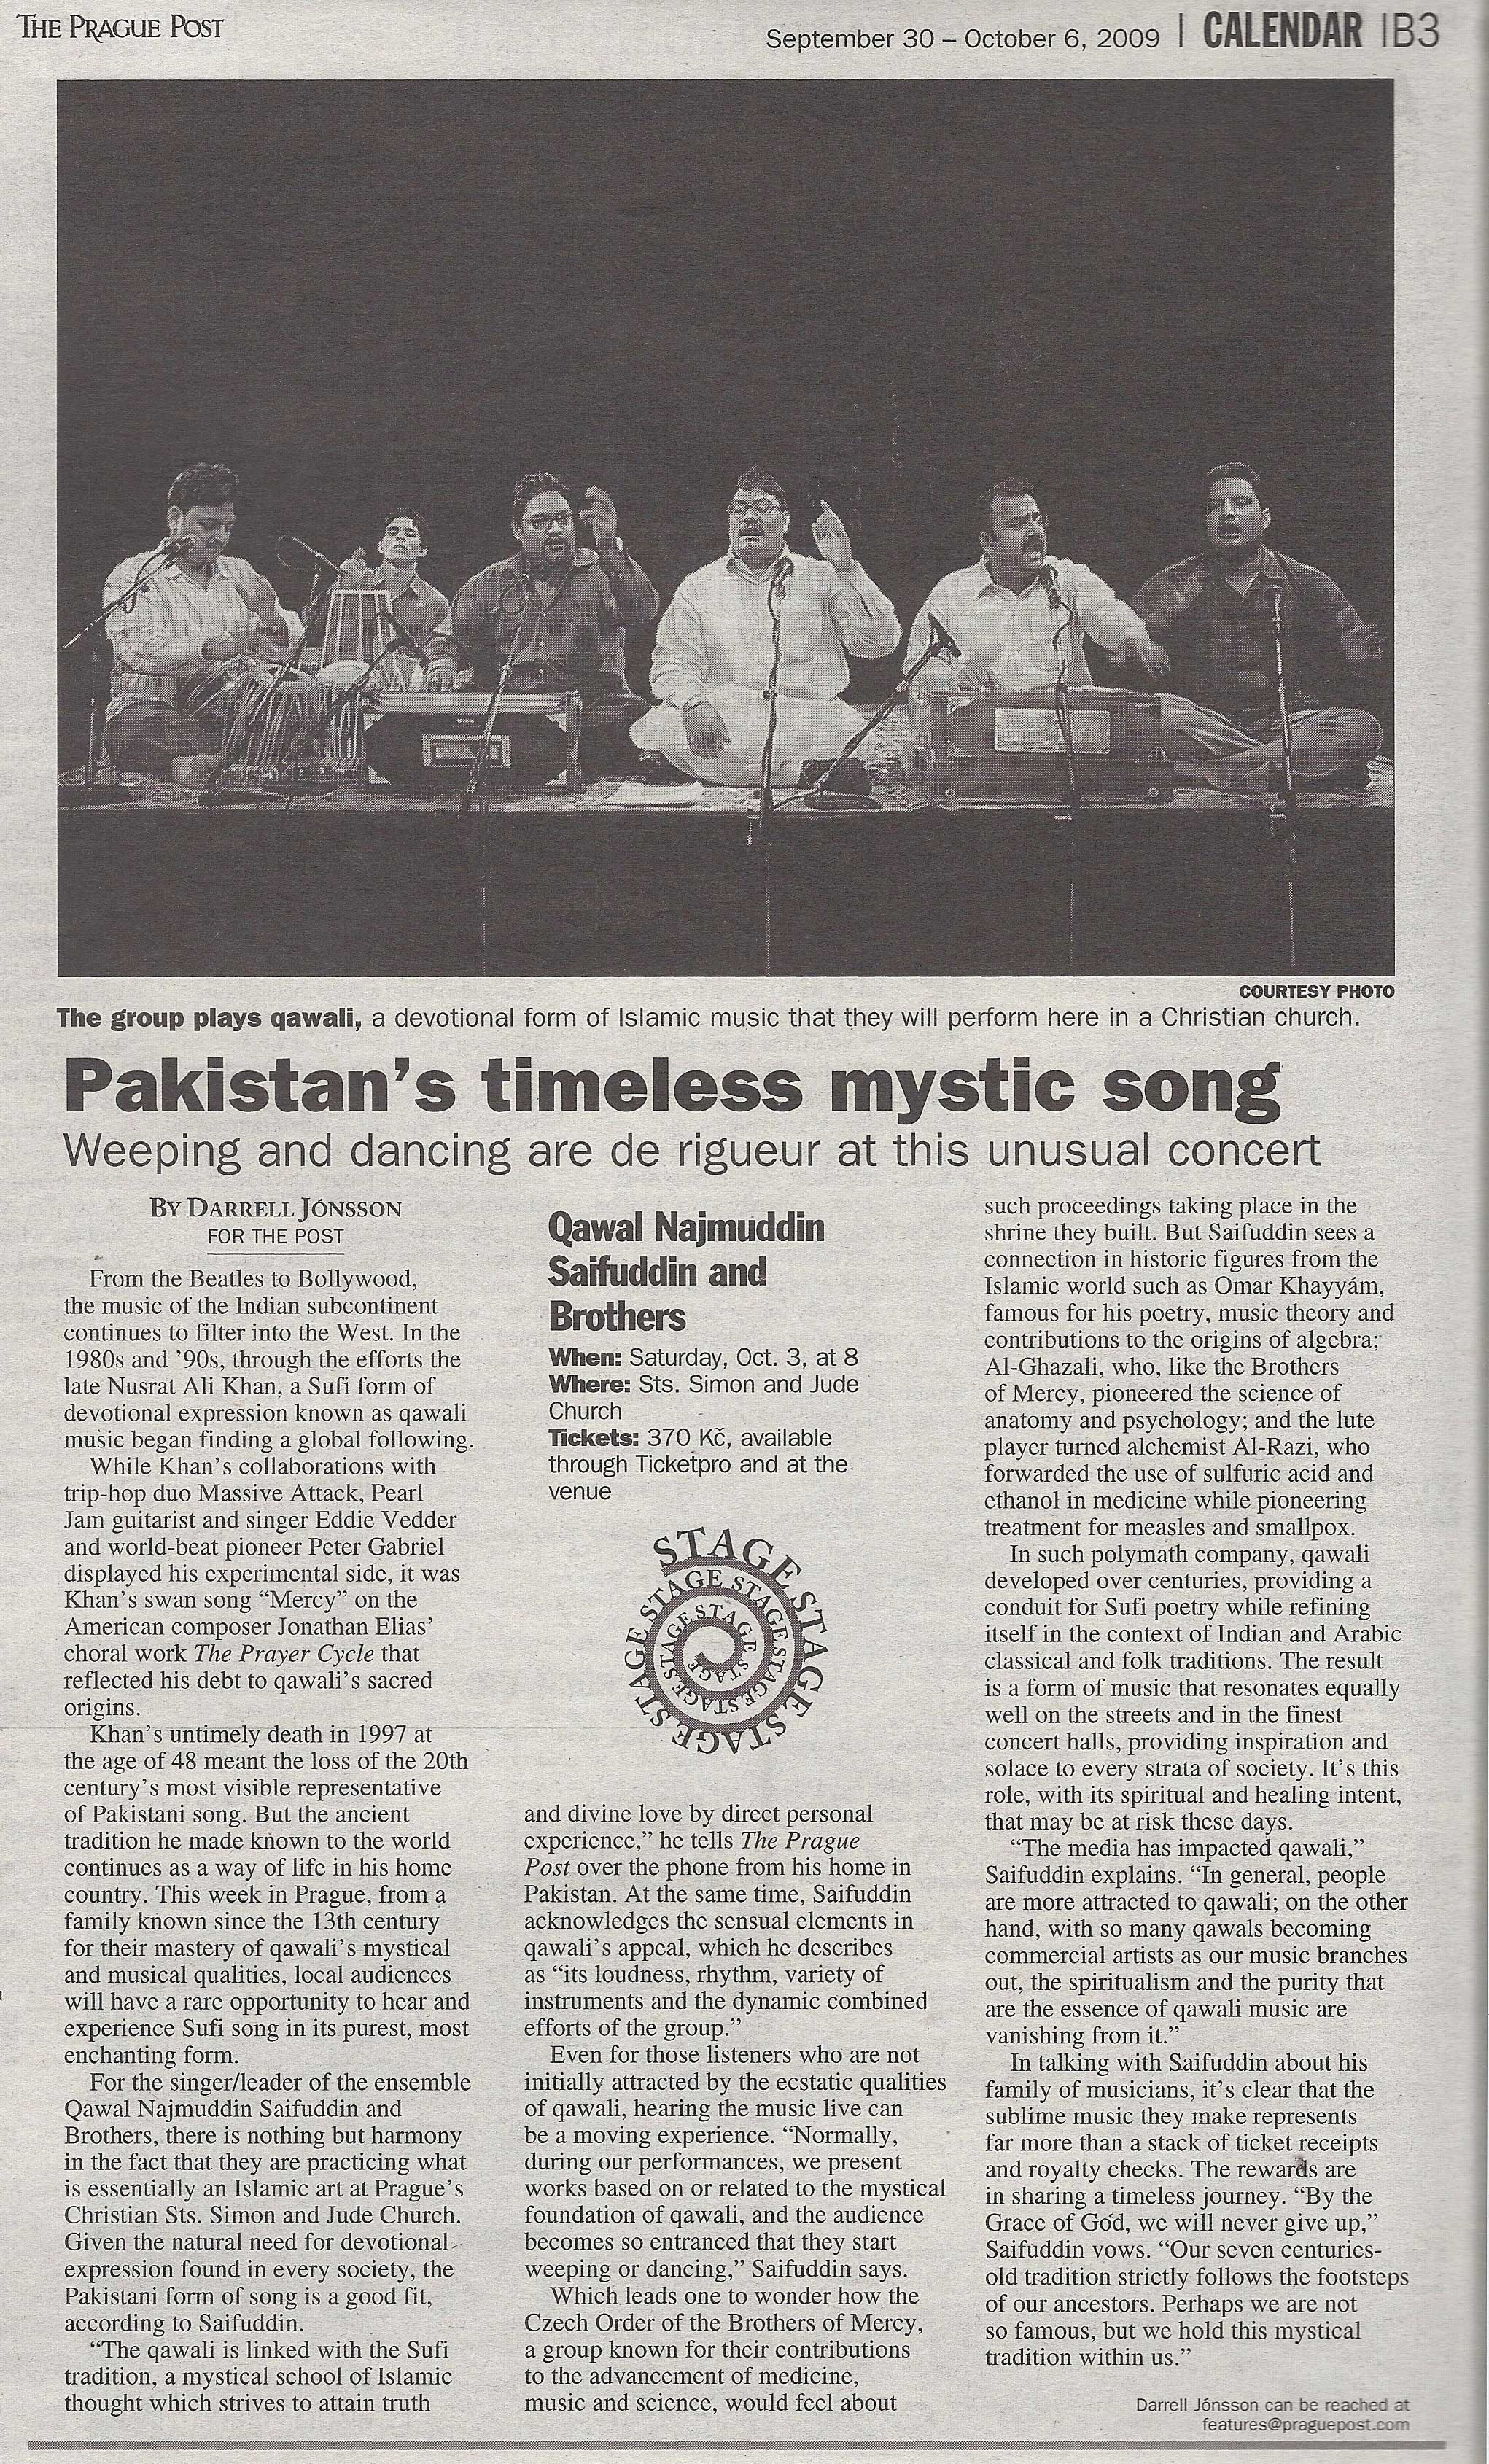 pakistans_timeless_mystic_song_edited